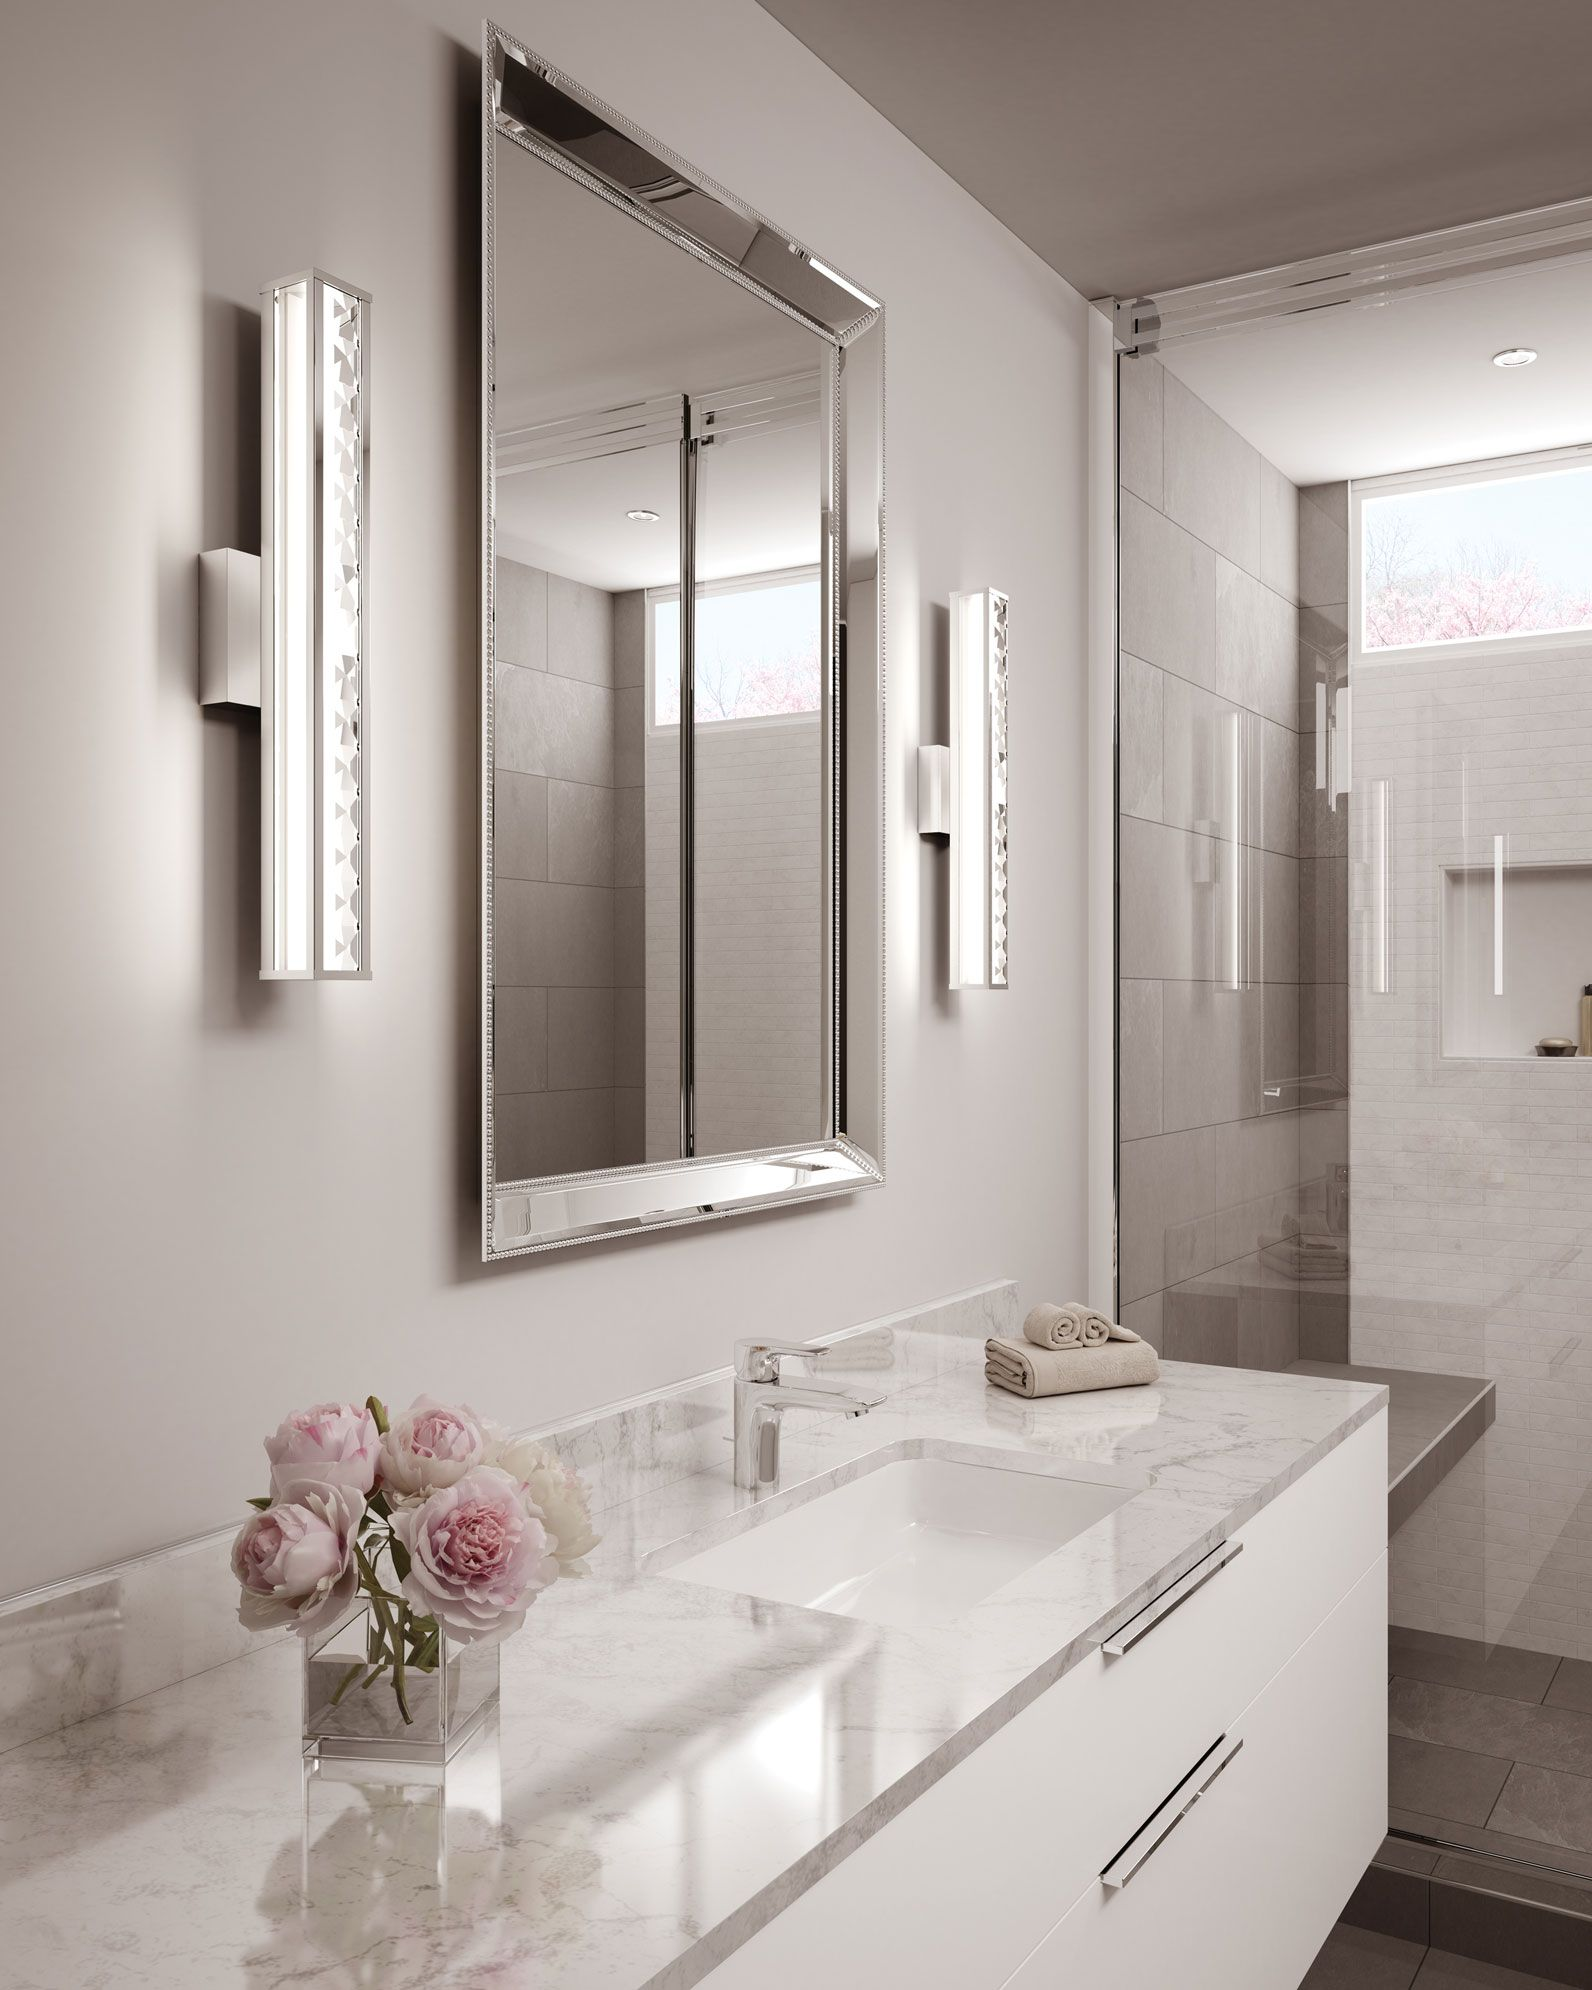 Installation Gallery - Bathroom Lighting - Bathroom Lighting  Feiss